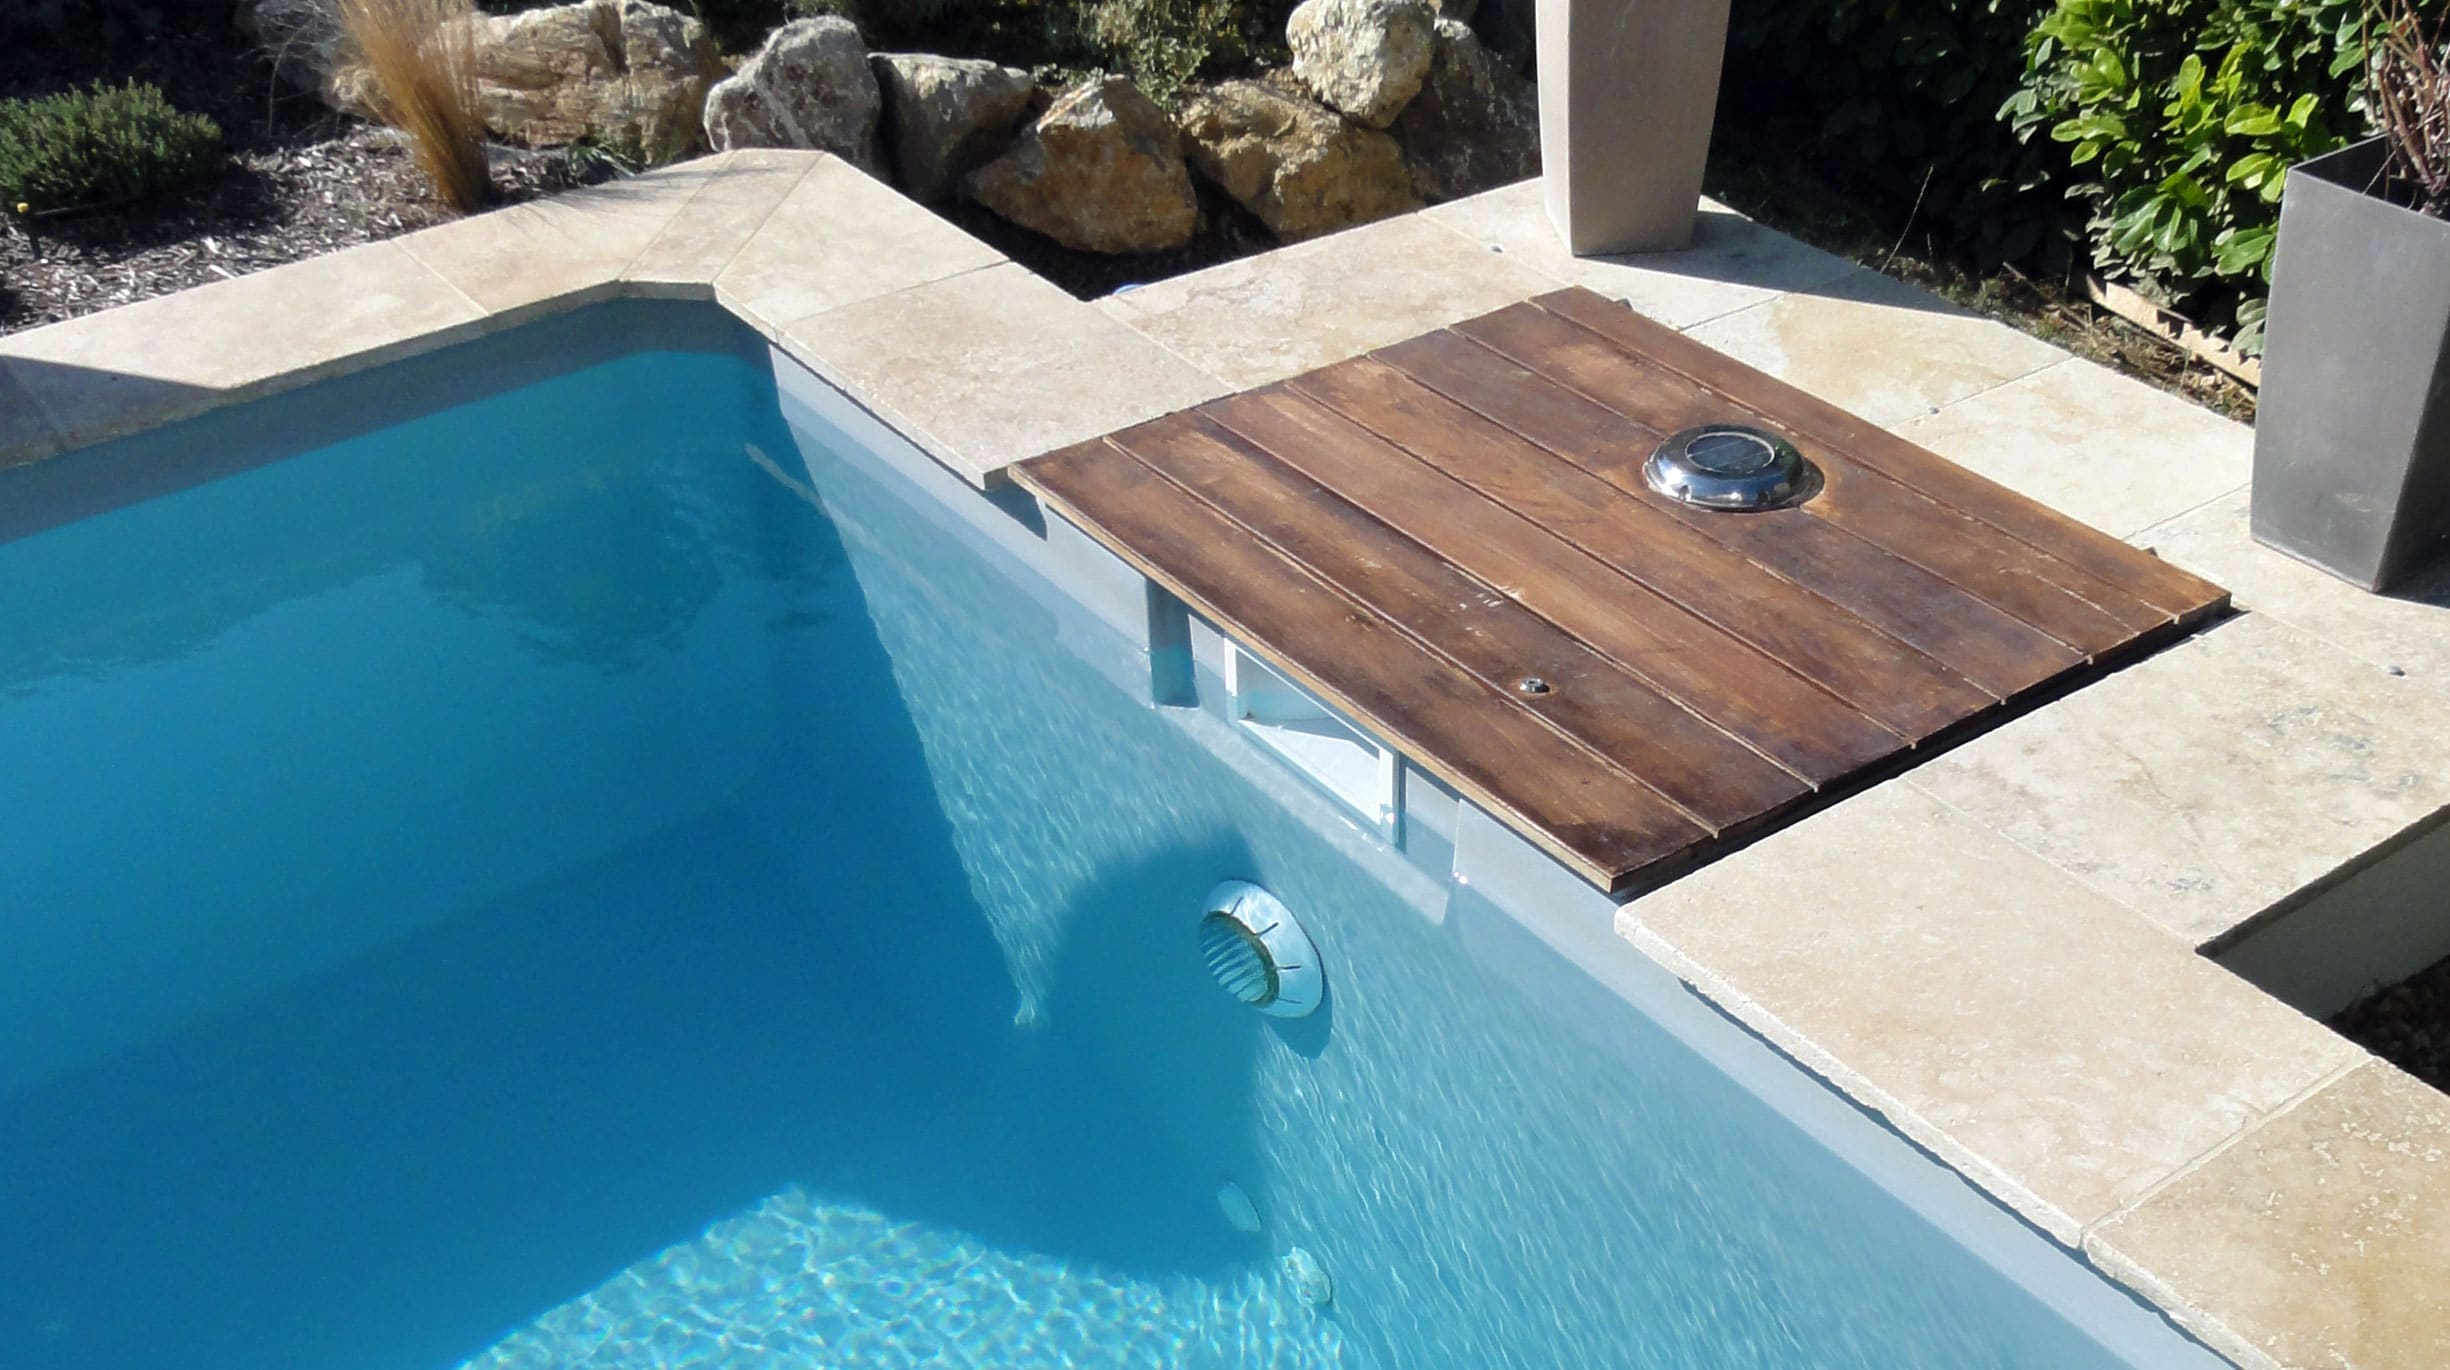 quel syst me de filtration choisir pour sa piscine coque. Black Bedroom Furniture Sets. Home Design Ideas